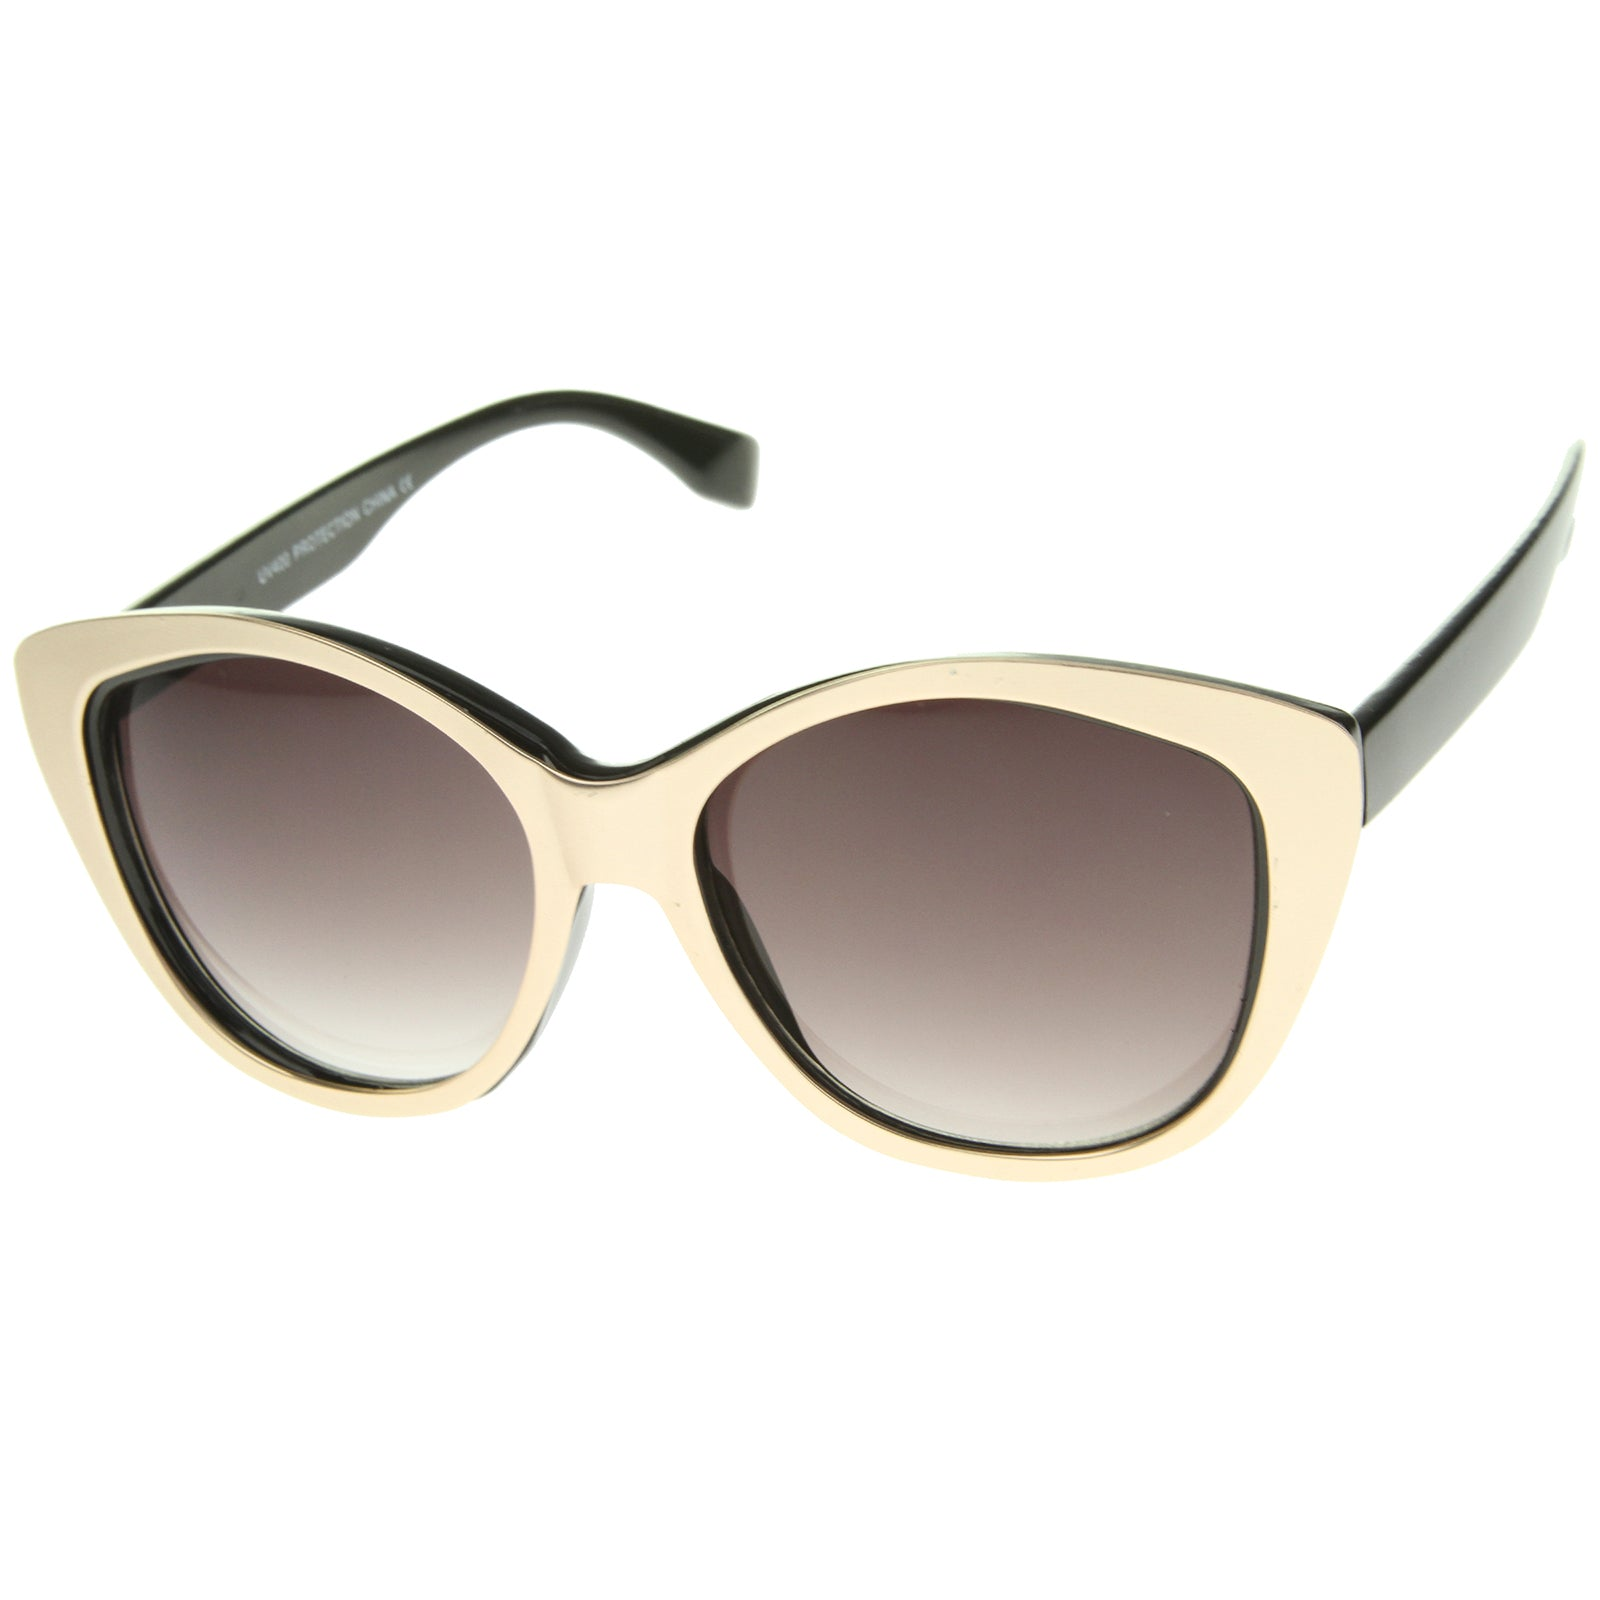 Women's High Fashion Two-Toned Tinted Lens Oversize Cat Eye Sunglasses 55mm - sunglass.la - 2